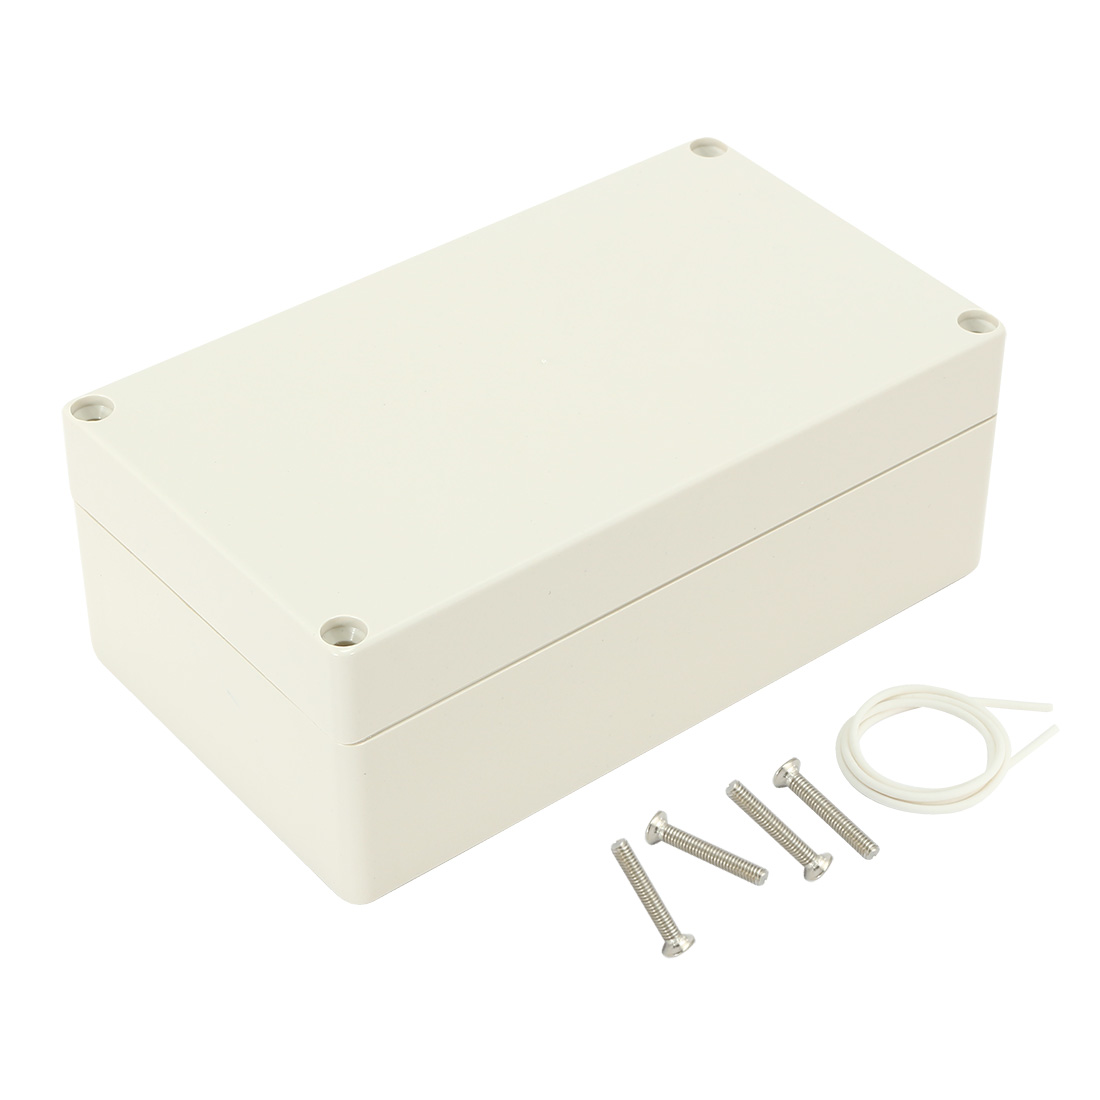 "6.2""x3.54""x2.3""(158mmx90mmx60mm) ABS Junction Box Universal Electric Project Enclosure"